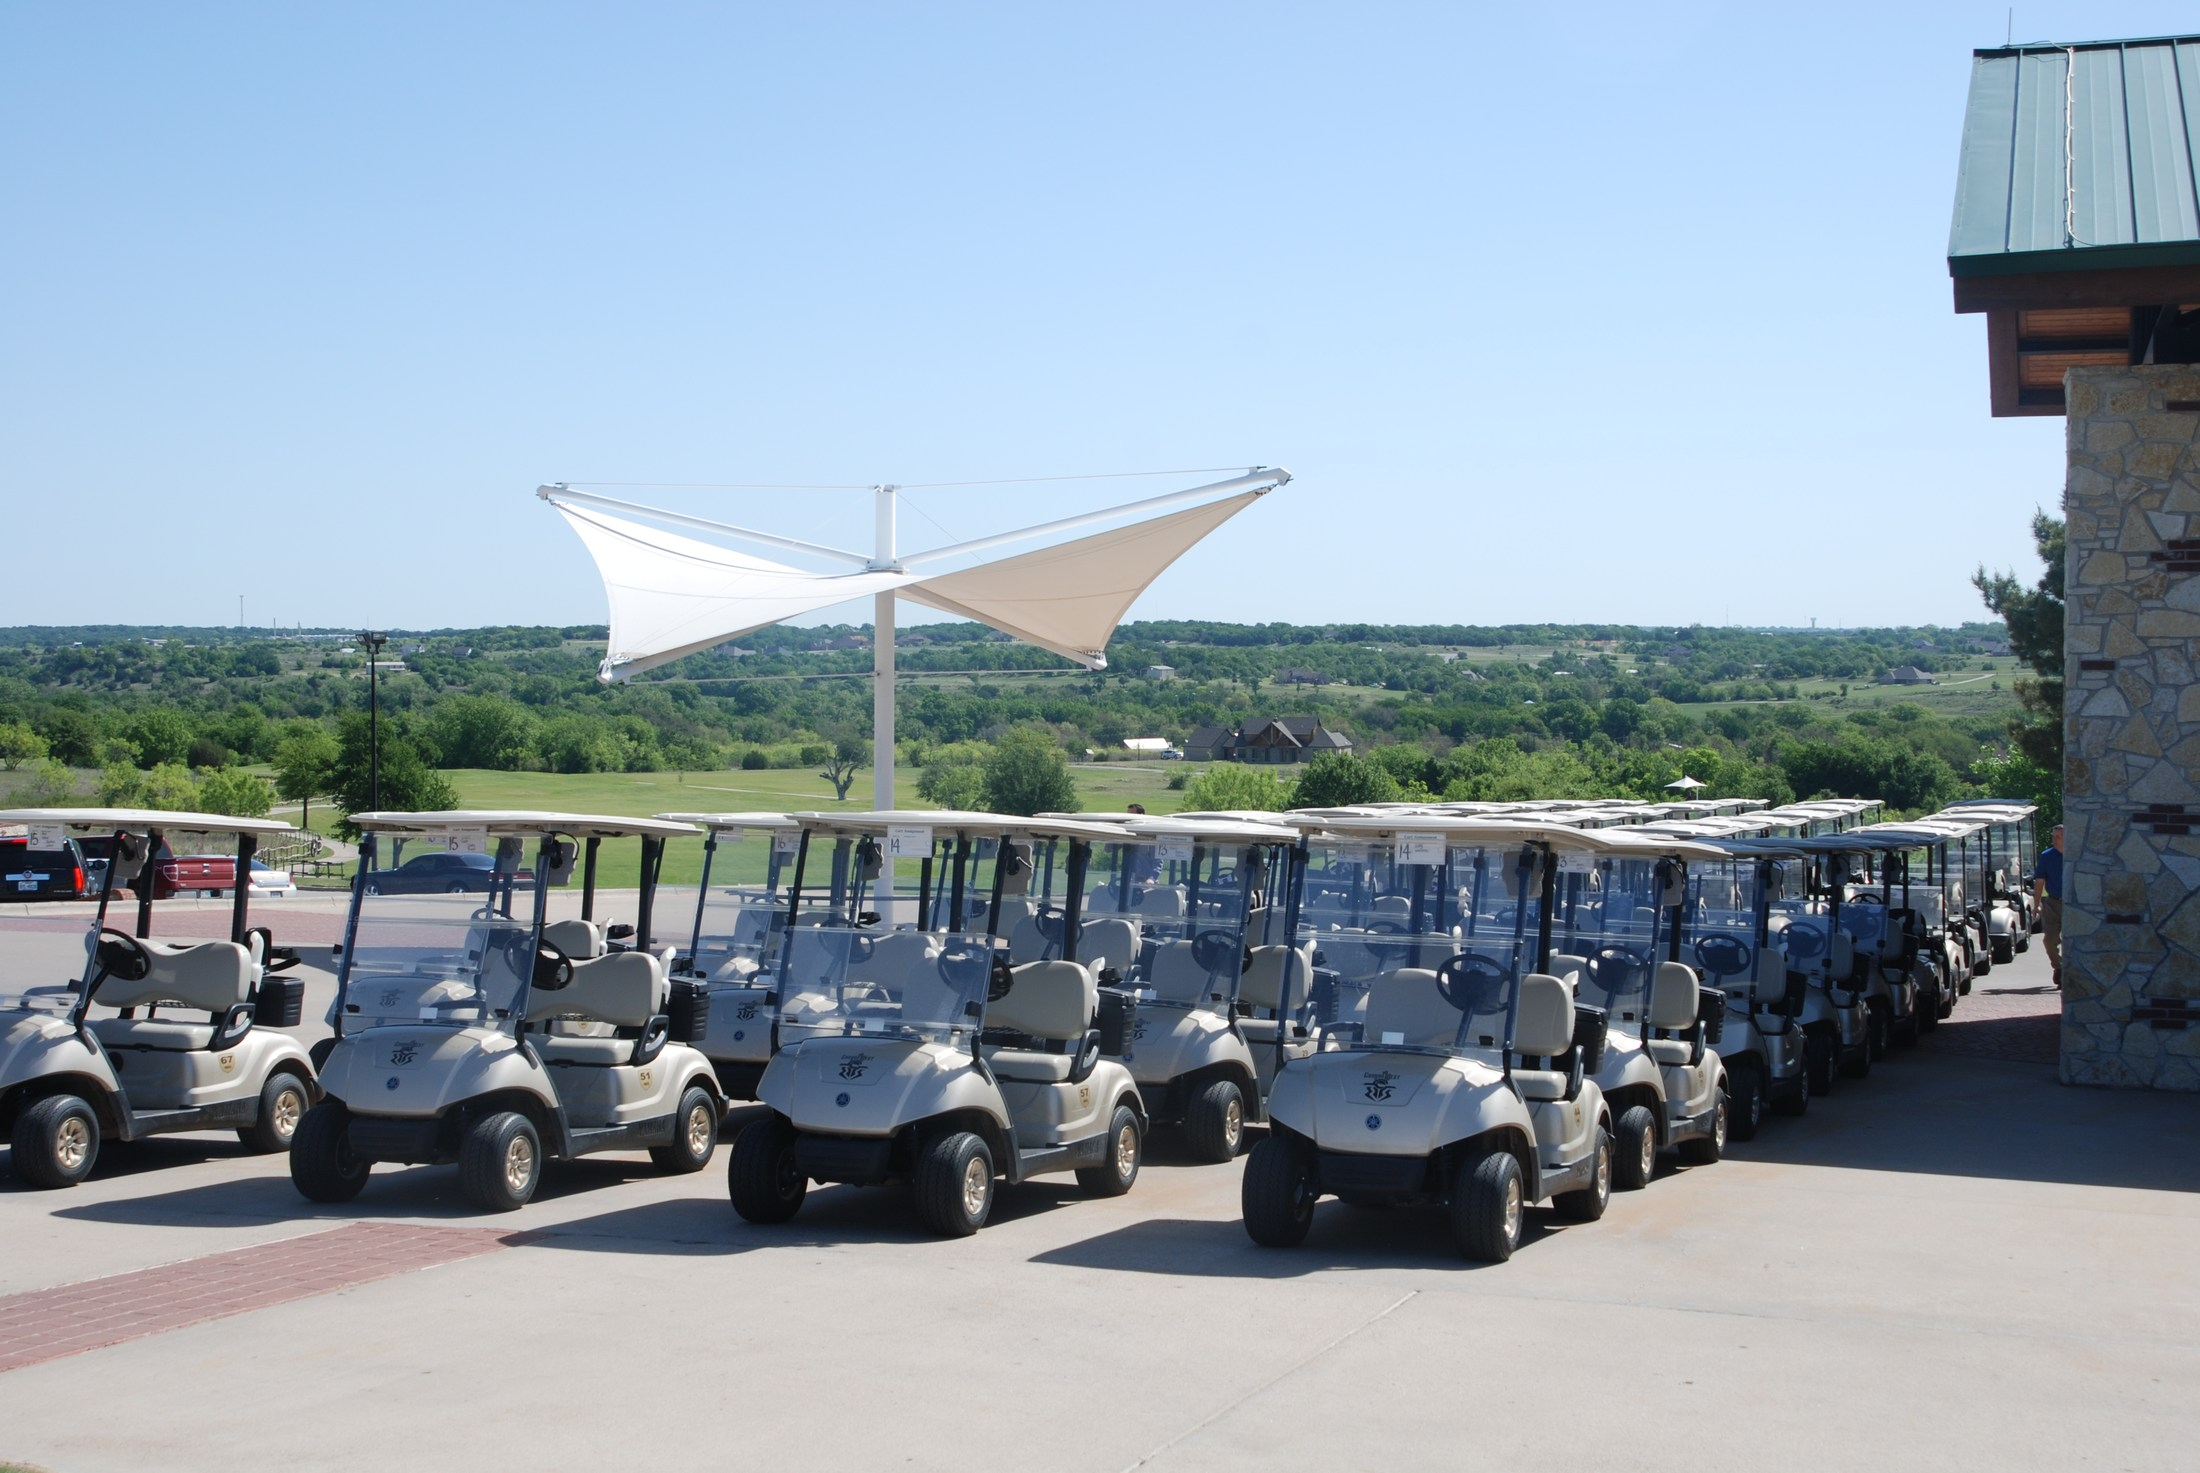 golf tour nt education foundation weatherford independent the weatherford isd education foundation is excited to announce our annual golf tour nt and title sponsors jerry durant auto group and charlie